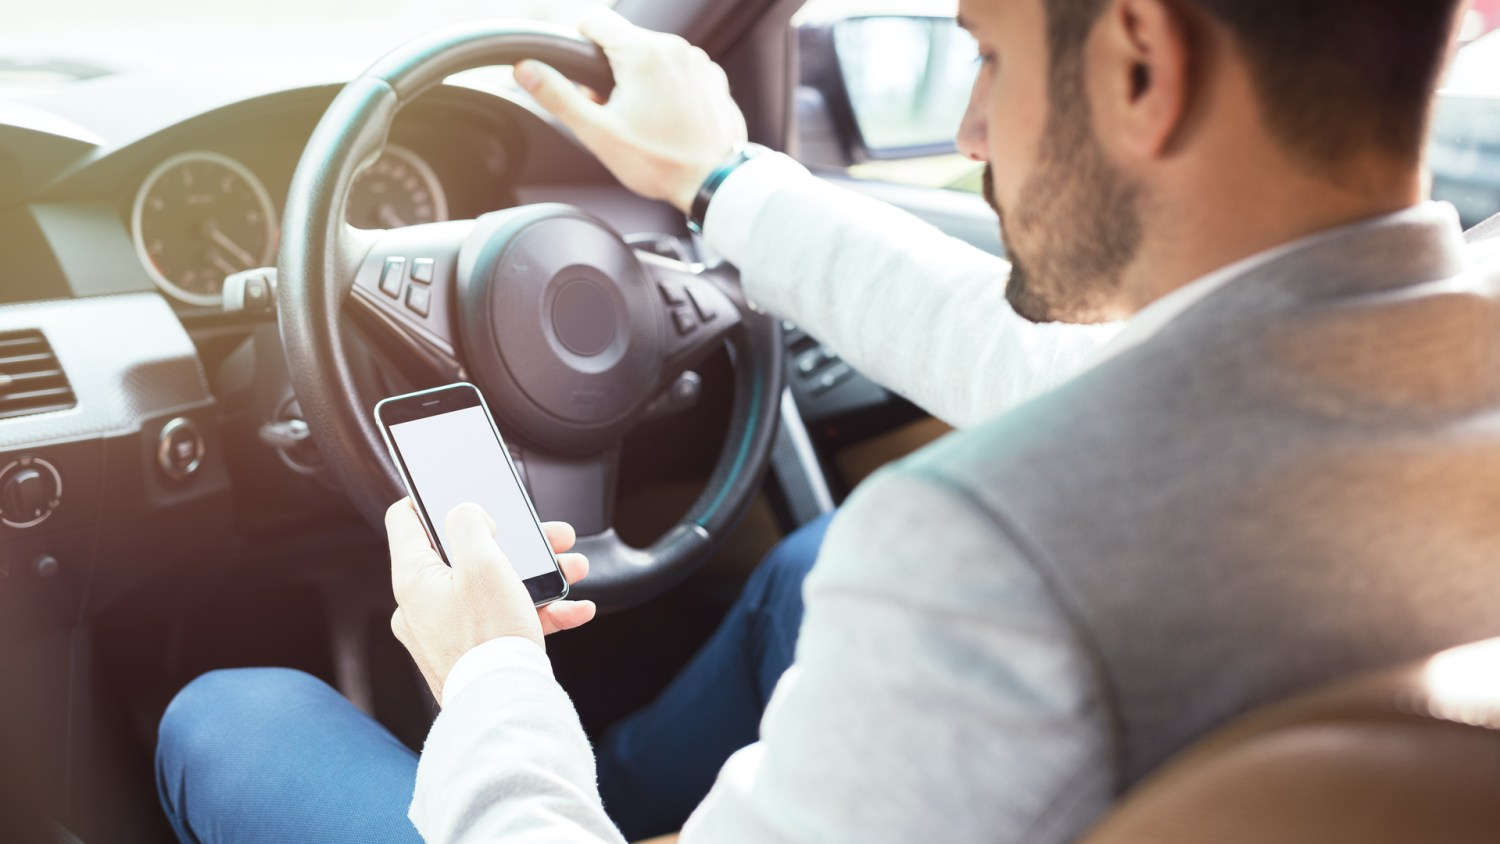 Opinion on mobile phone use at the wheel